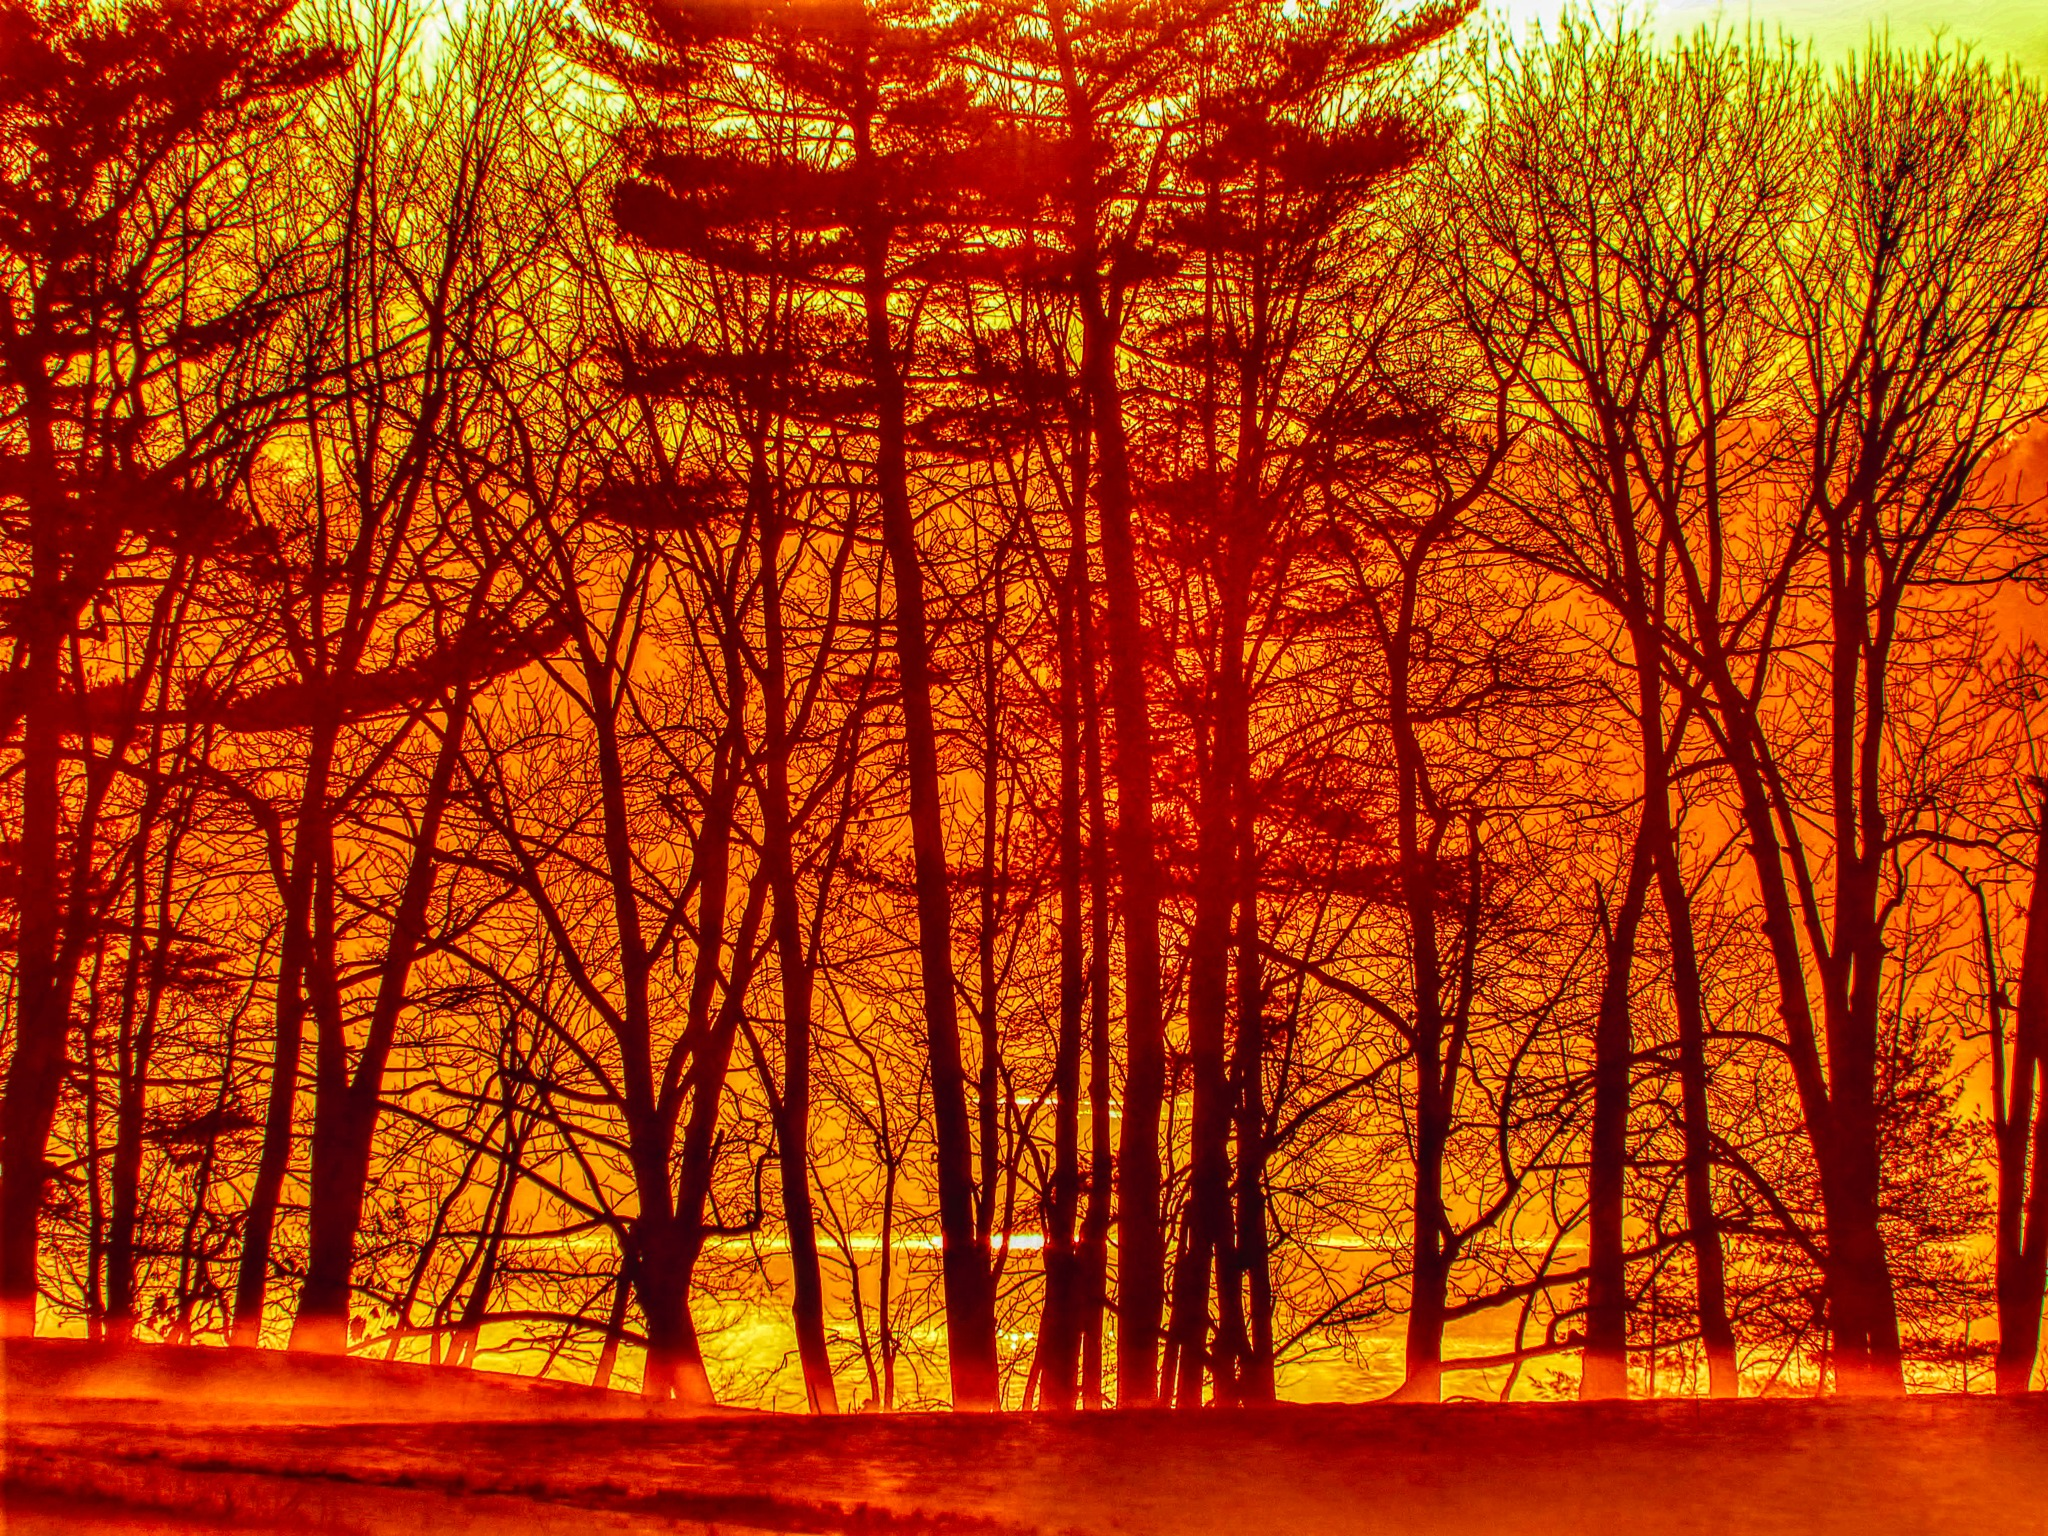 Sunset, Wolfe's Neck Woods State Park, Freeport, Maine by D. Scott Hufford